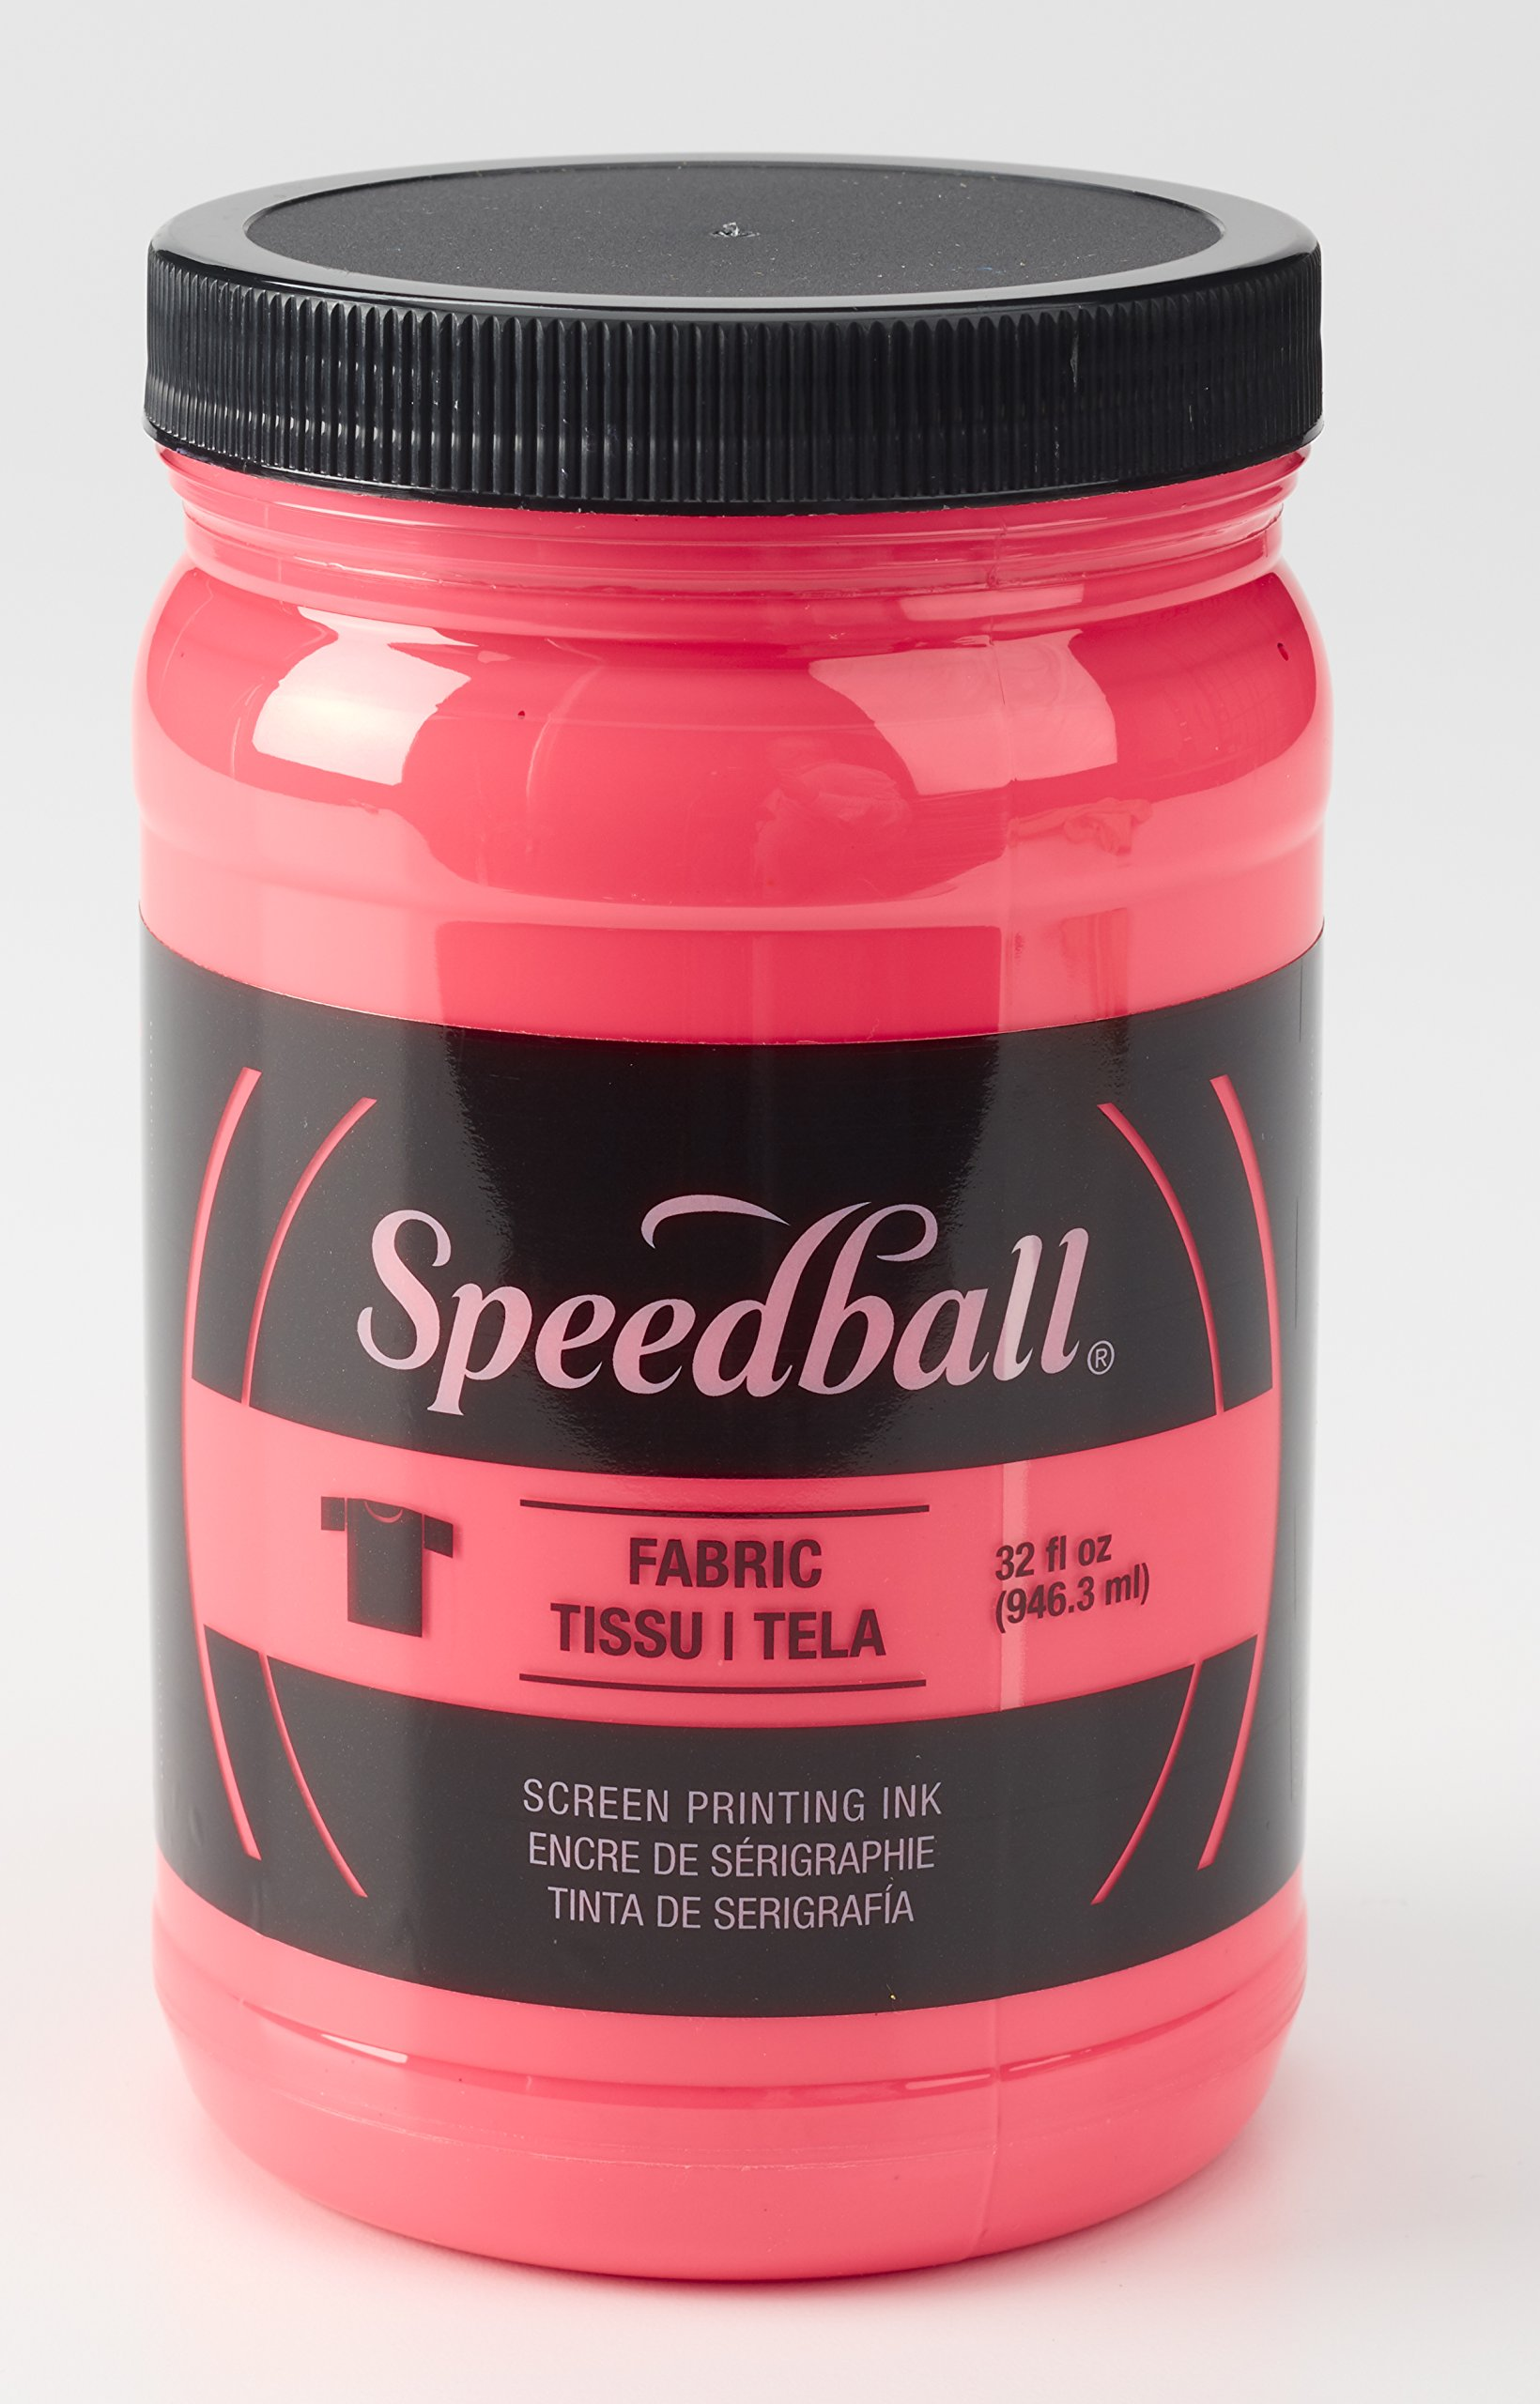 Speedball 004693 Fluorescent Screen Printing Ink, 32 Fl. oz, Hot Pink by Speedball